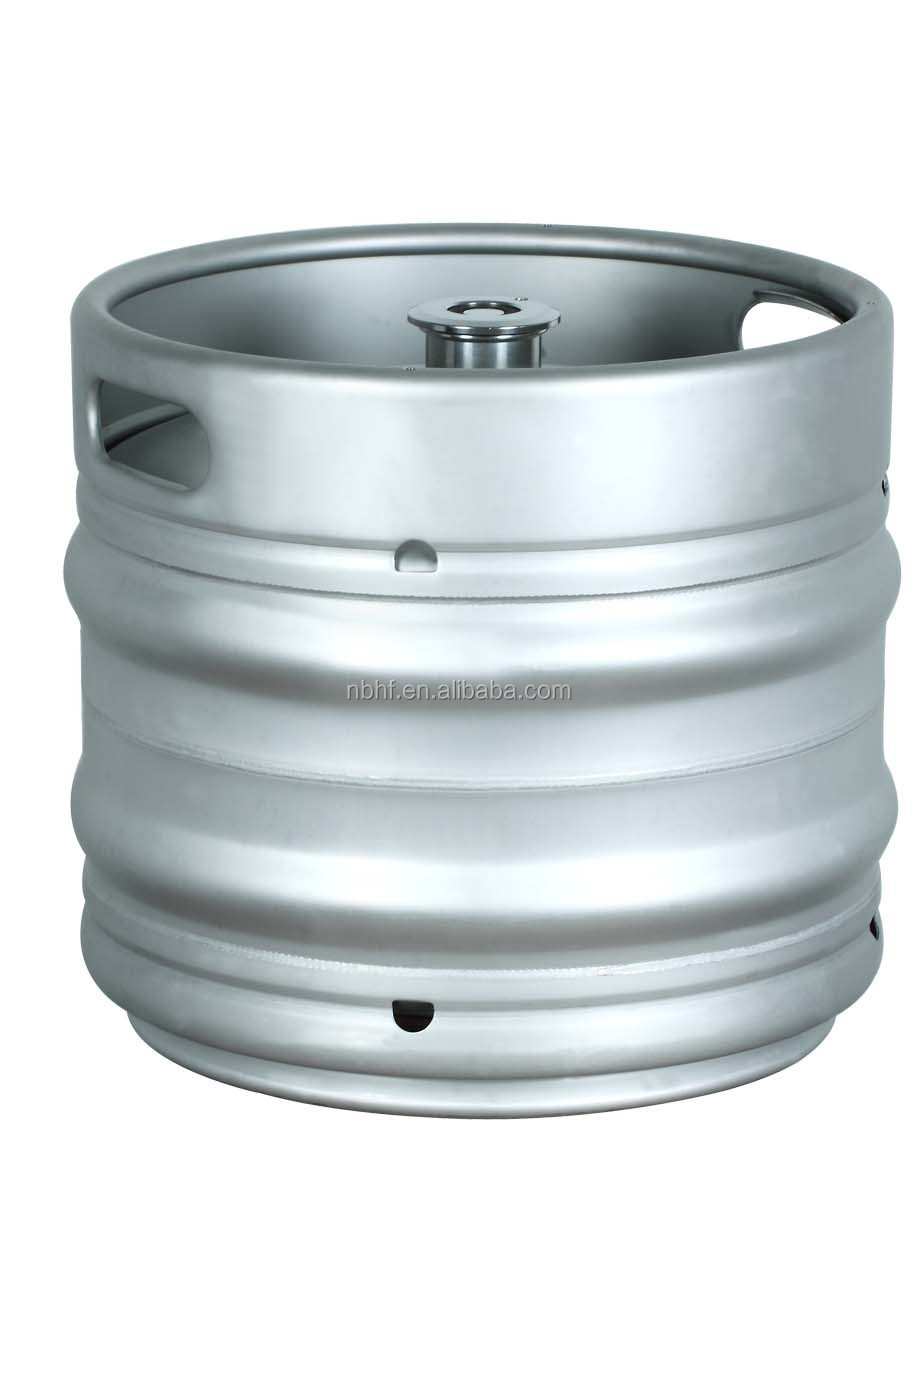 beer barrel keg 30liter